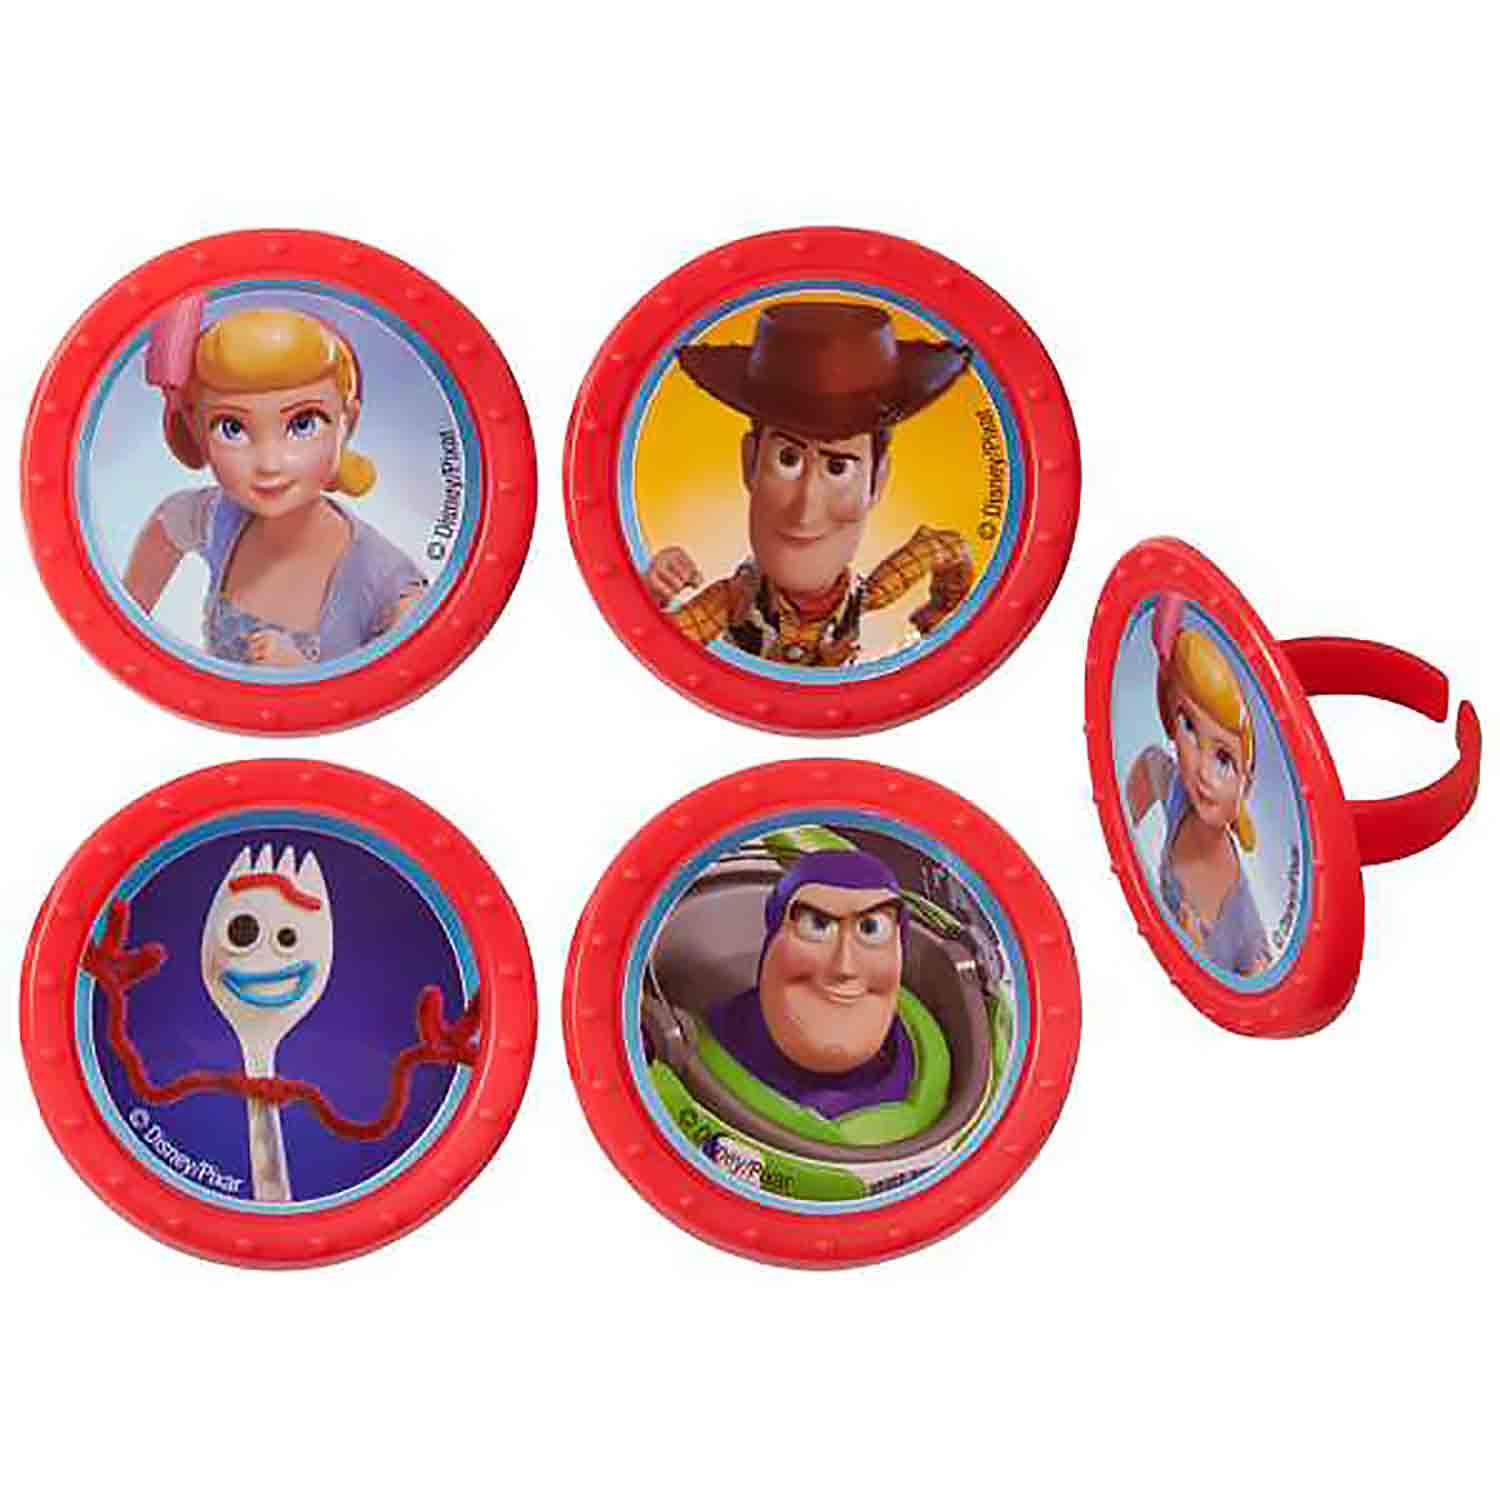 Toy Story 4 Rings